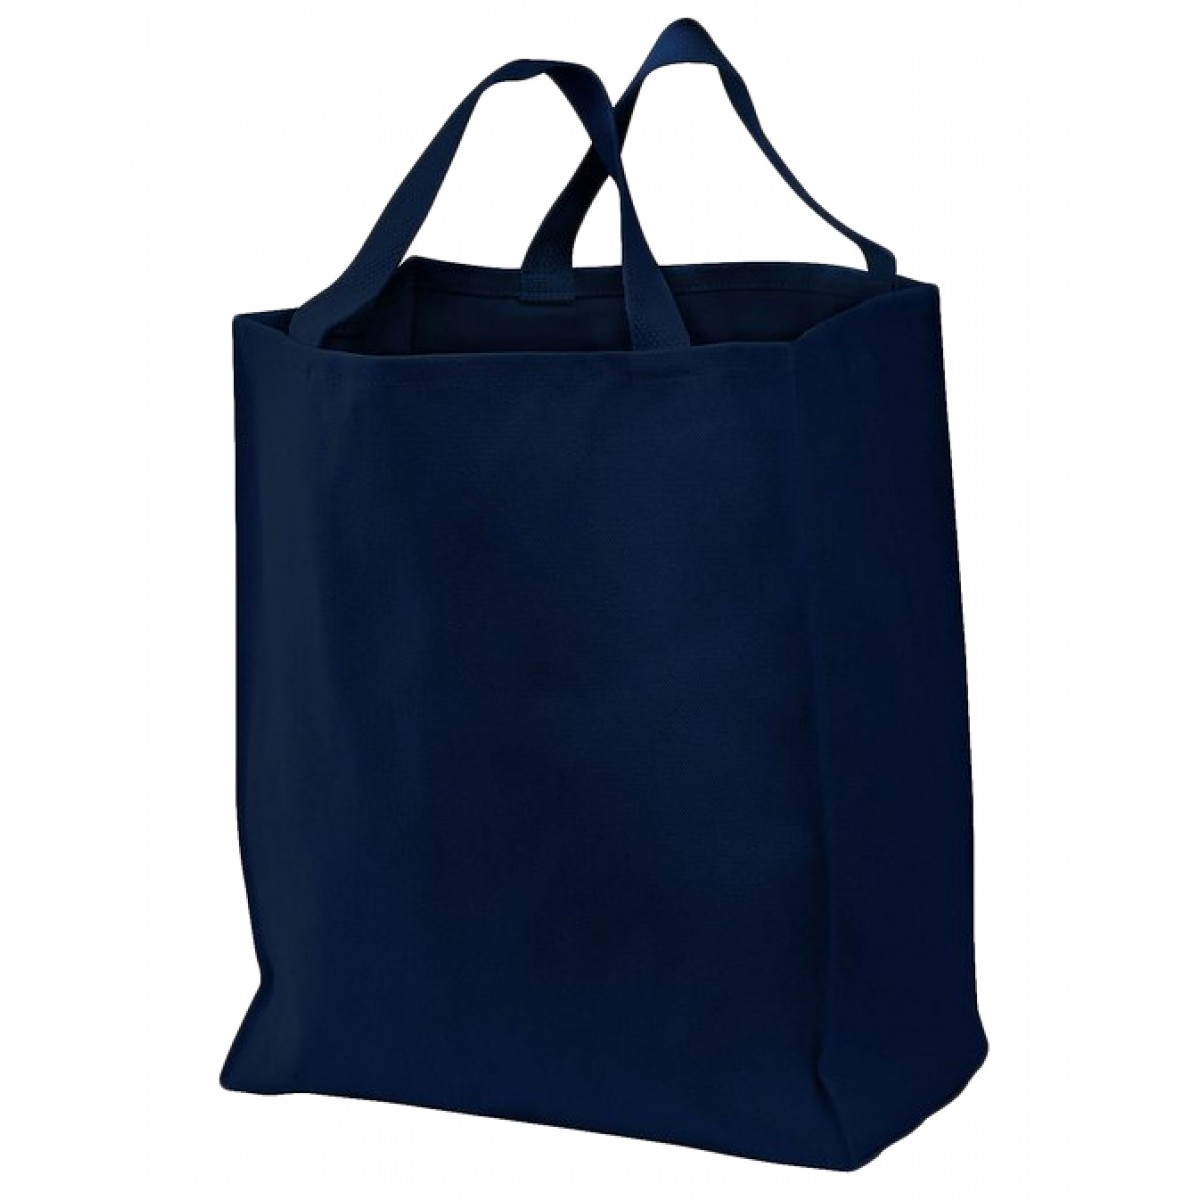 Grocery Tote-Navy